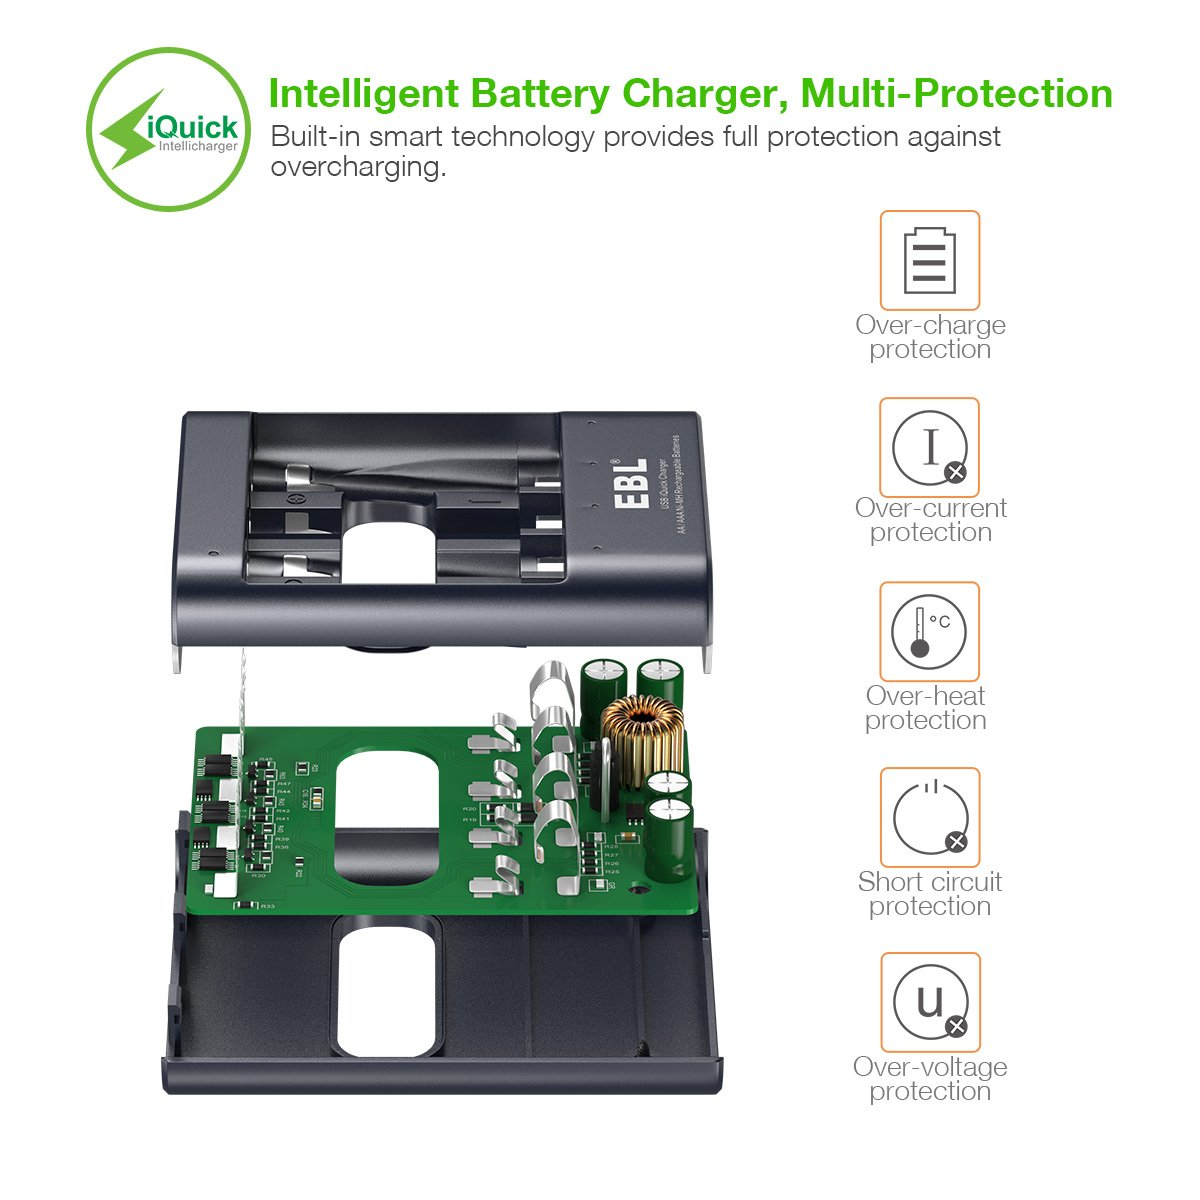 EBL 40Min iQuick Smart USB Individual Battery Charger for AA AAA Ni-MH Rechargeable Batteries